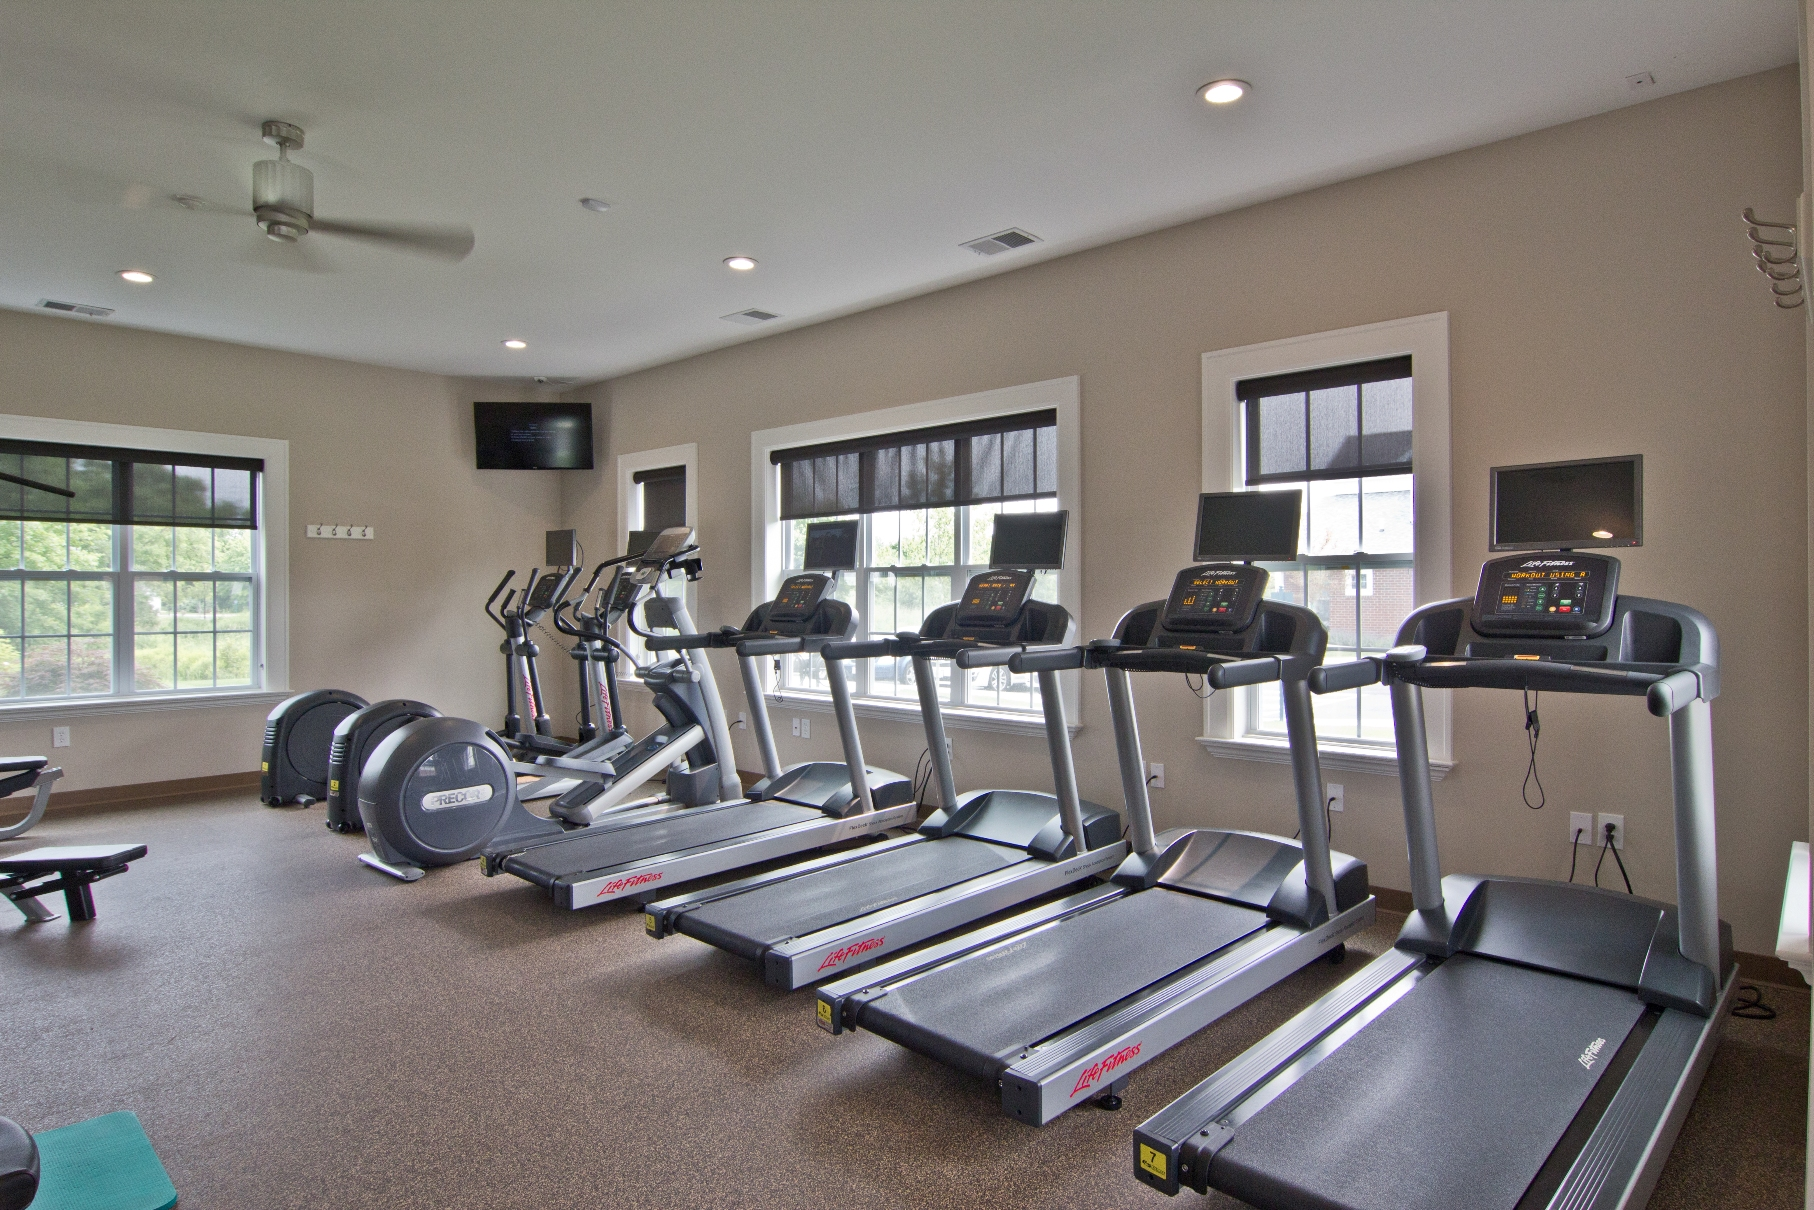 Treadmills inside fitness gym